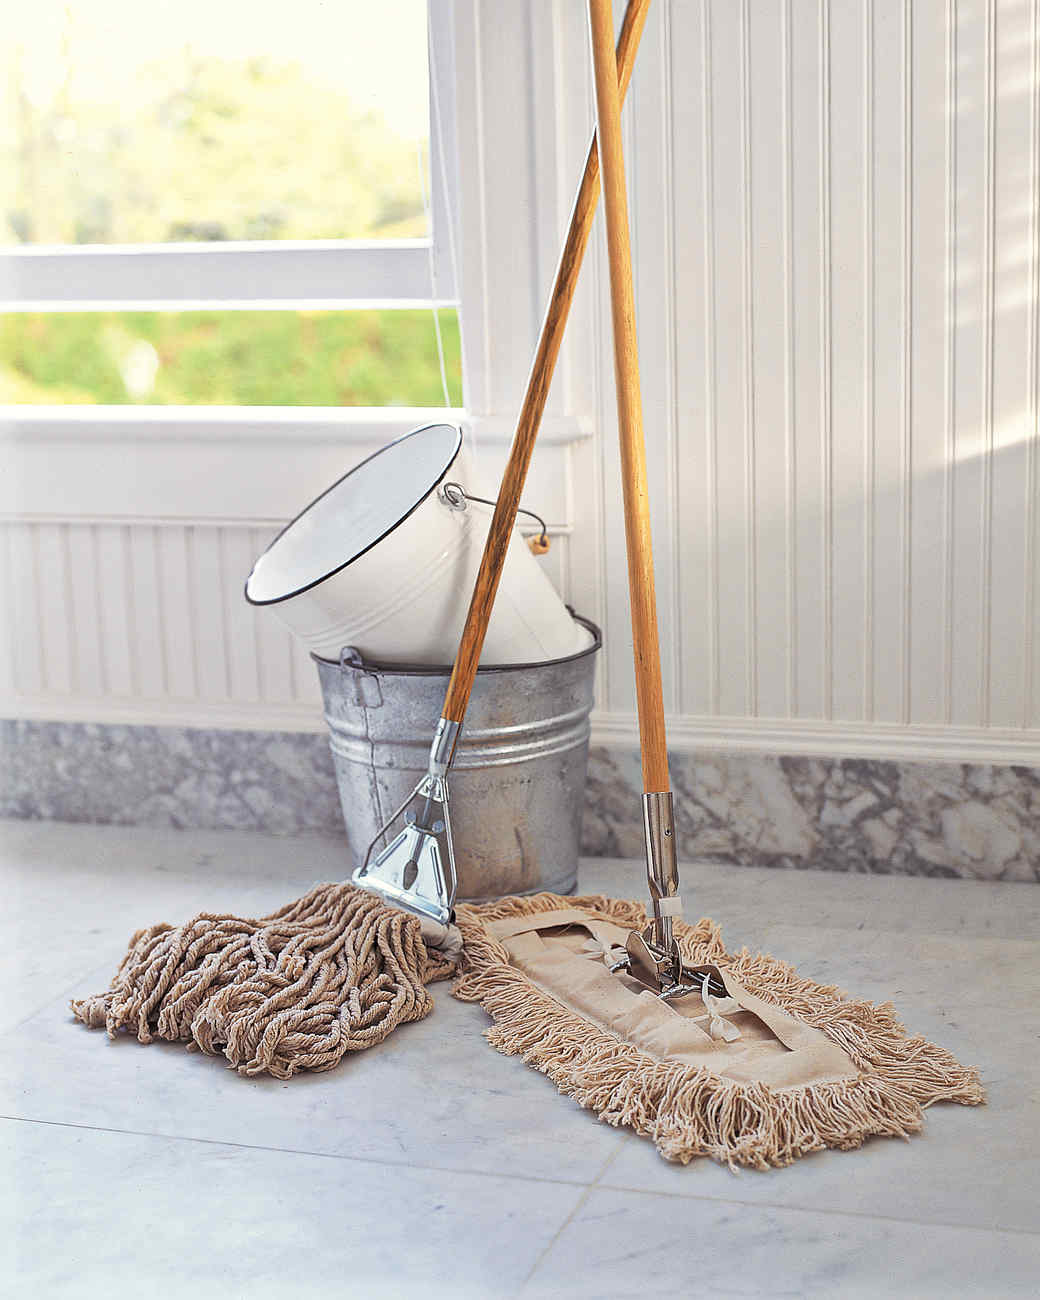 Mopping: The Basics Everyone Should Know